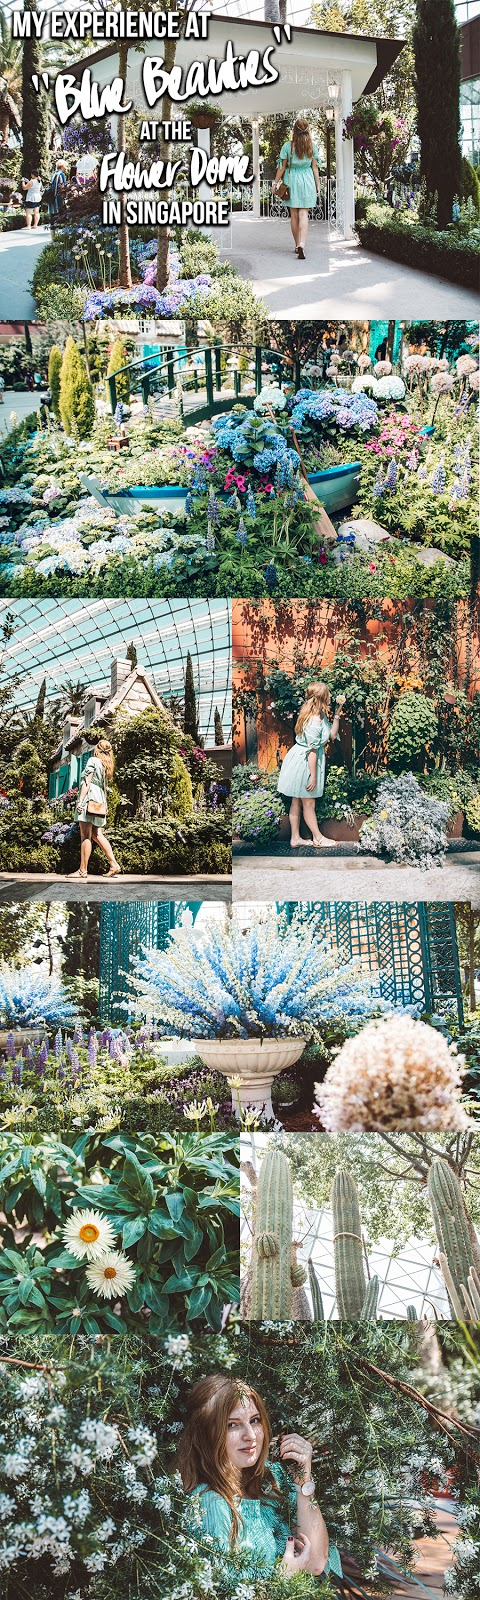 """My Experience at """"Blue Beauties"""" at the Flower Dome in Singapore"""